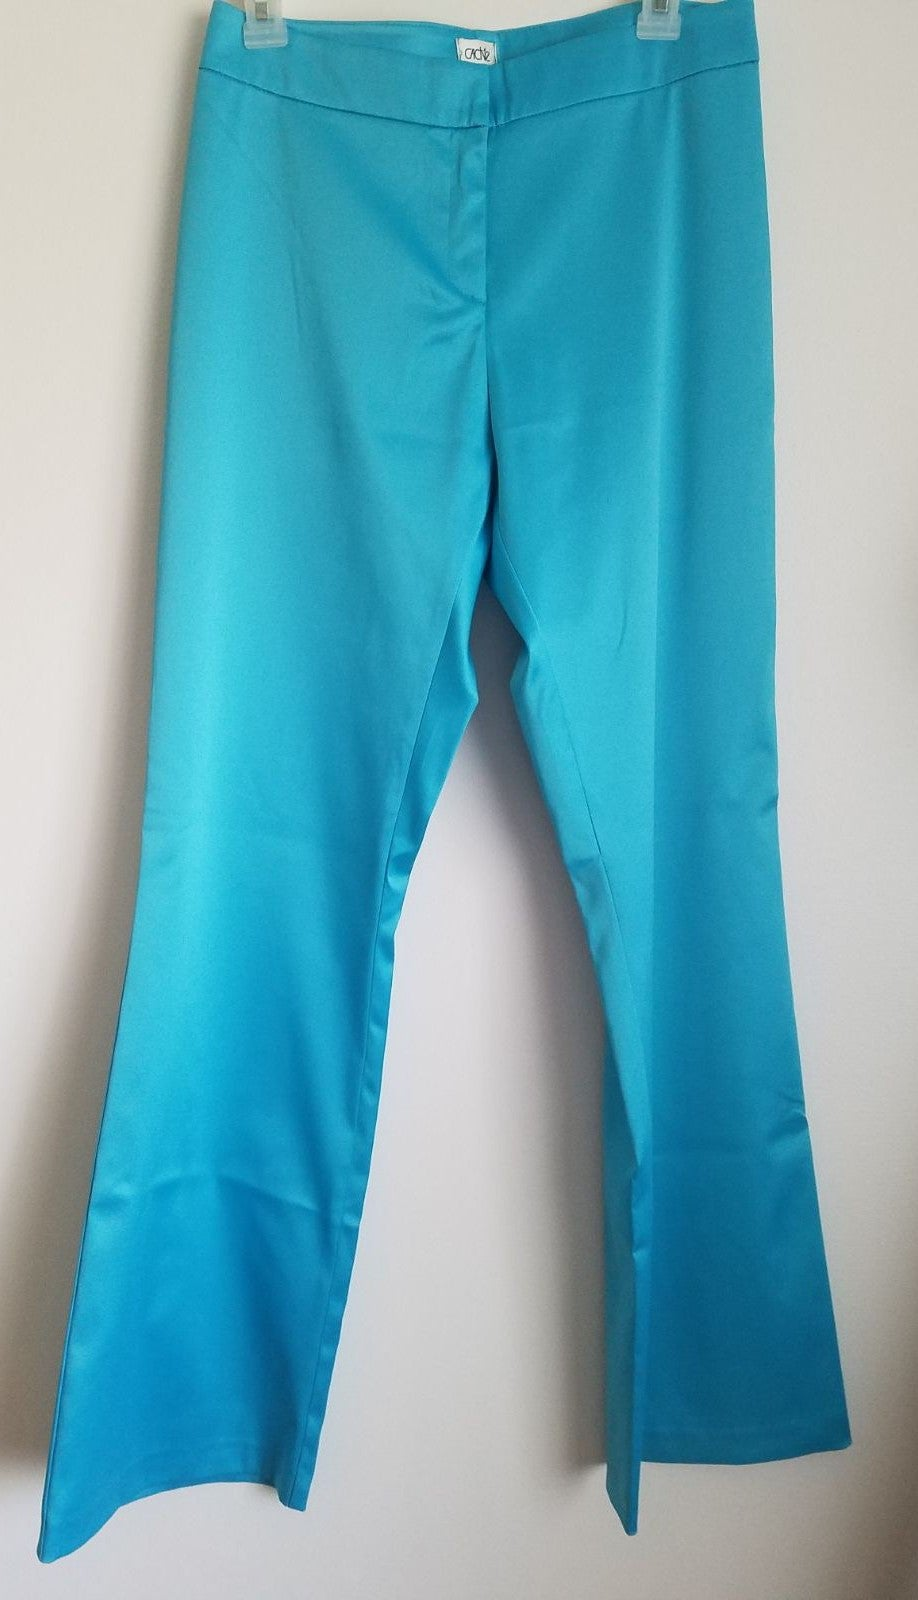 Cache womens blue dress pants size 10